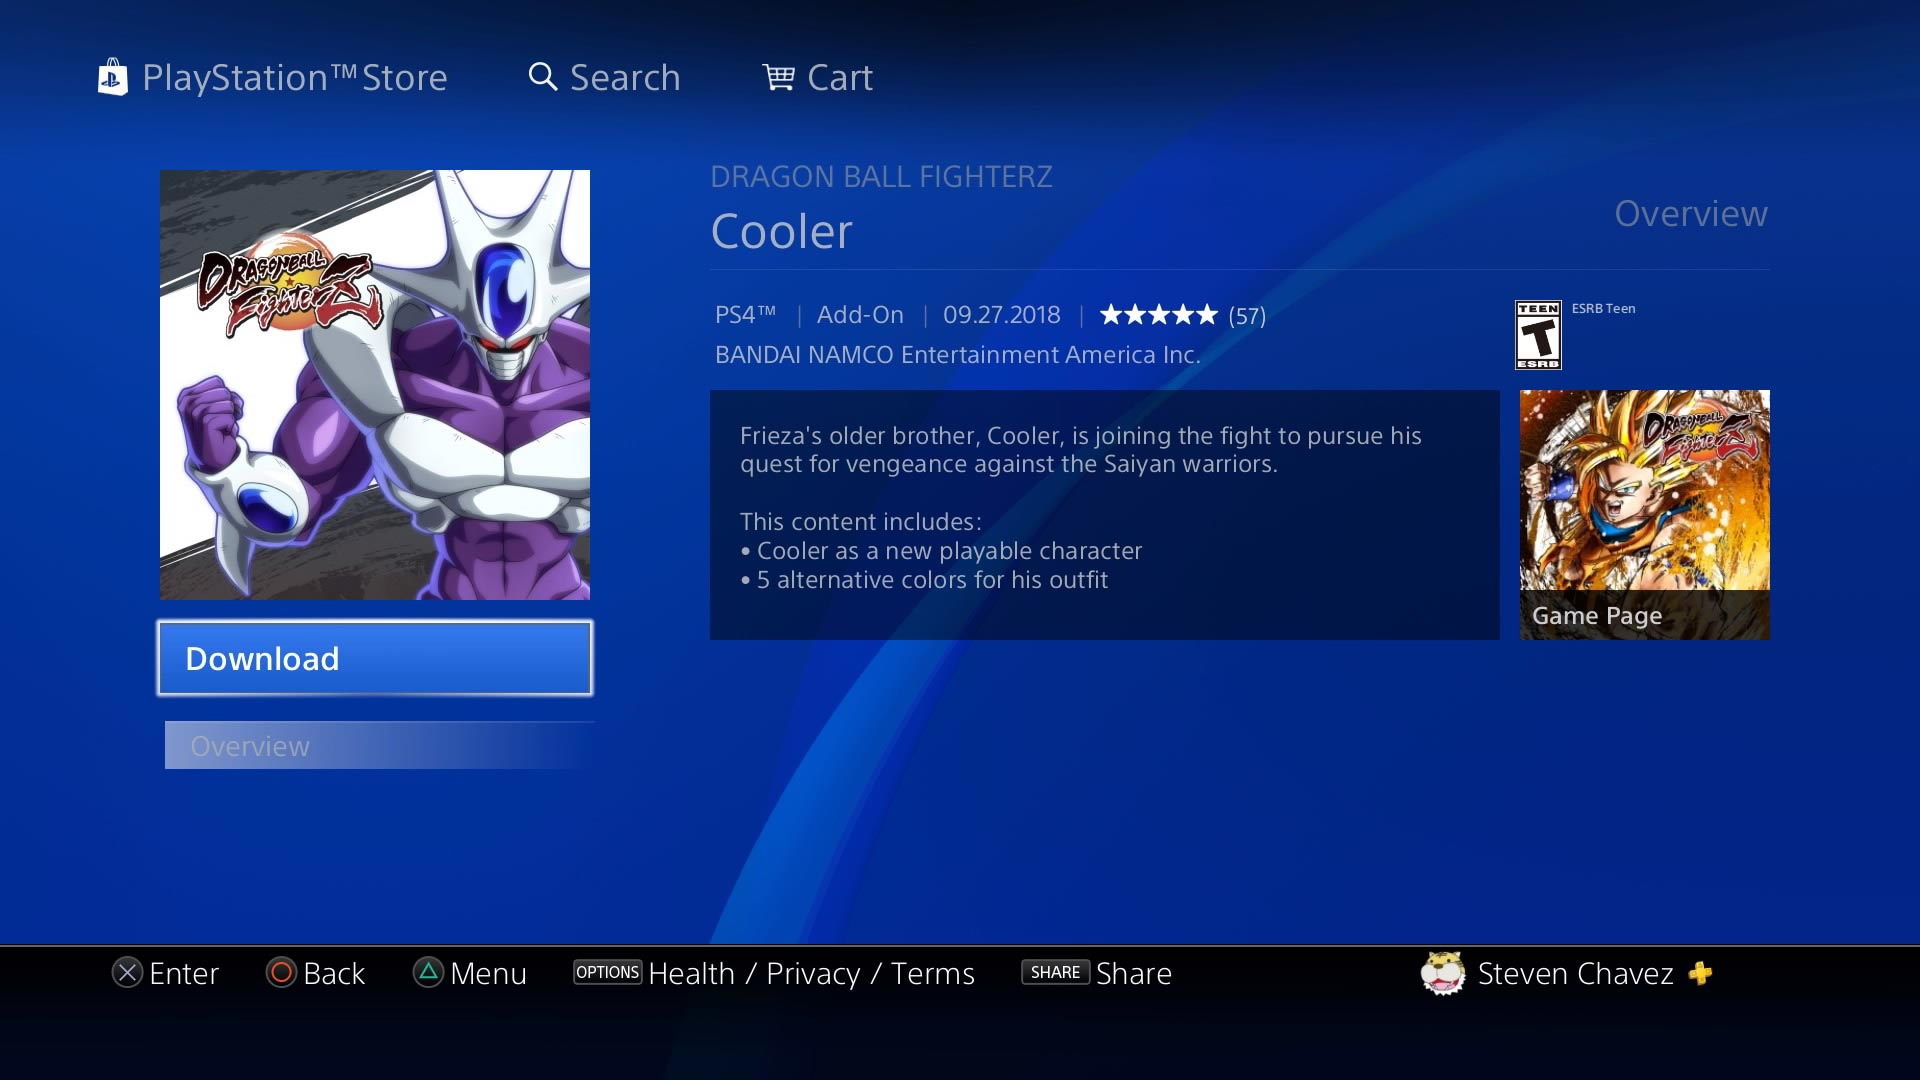 Android 17 and Cooler now available in Dragon Ball FighterZ 3 out of 15 image gallery